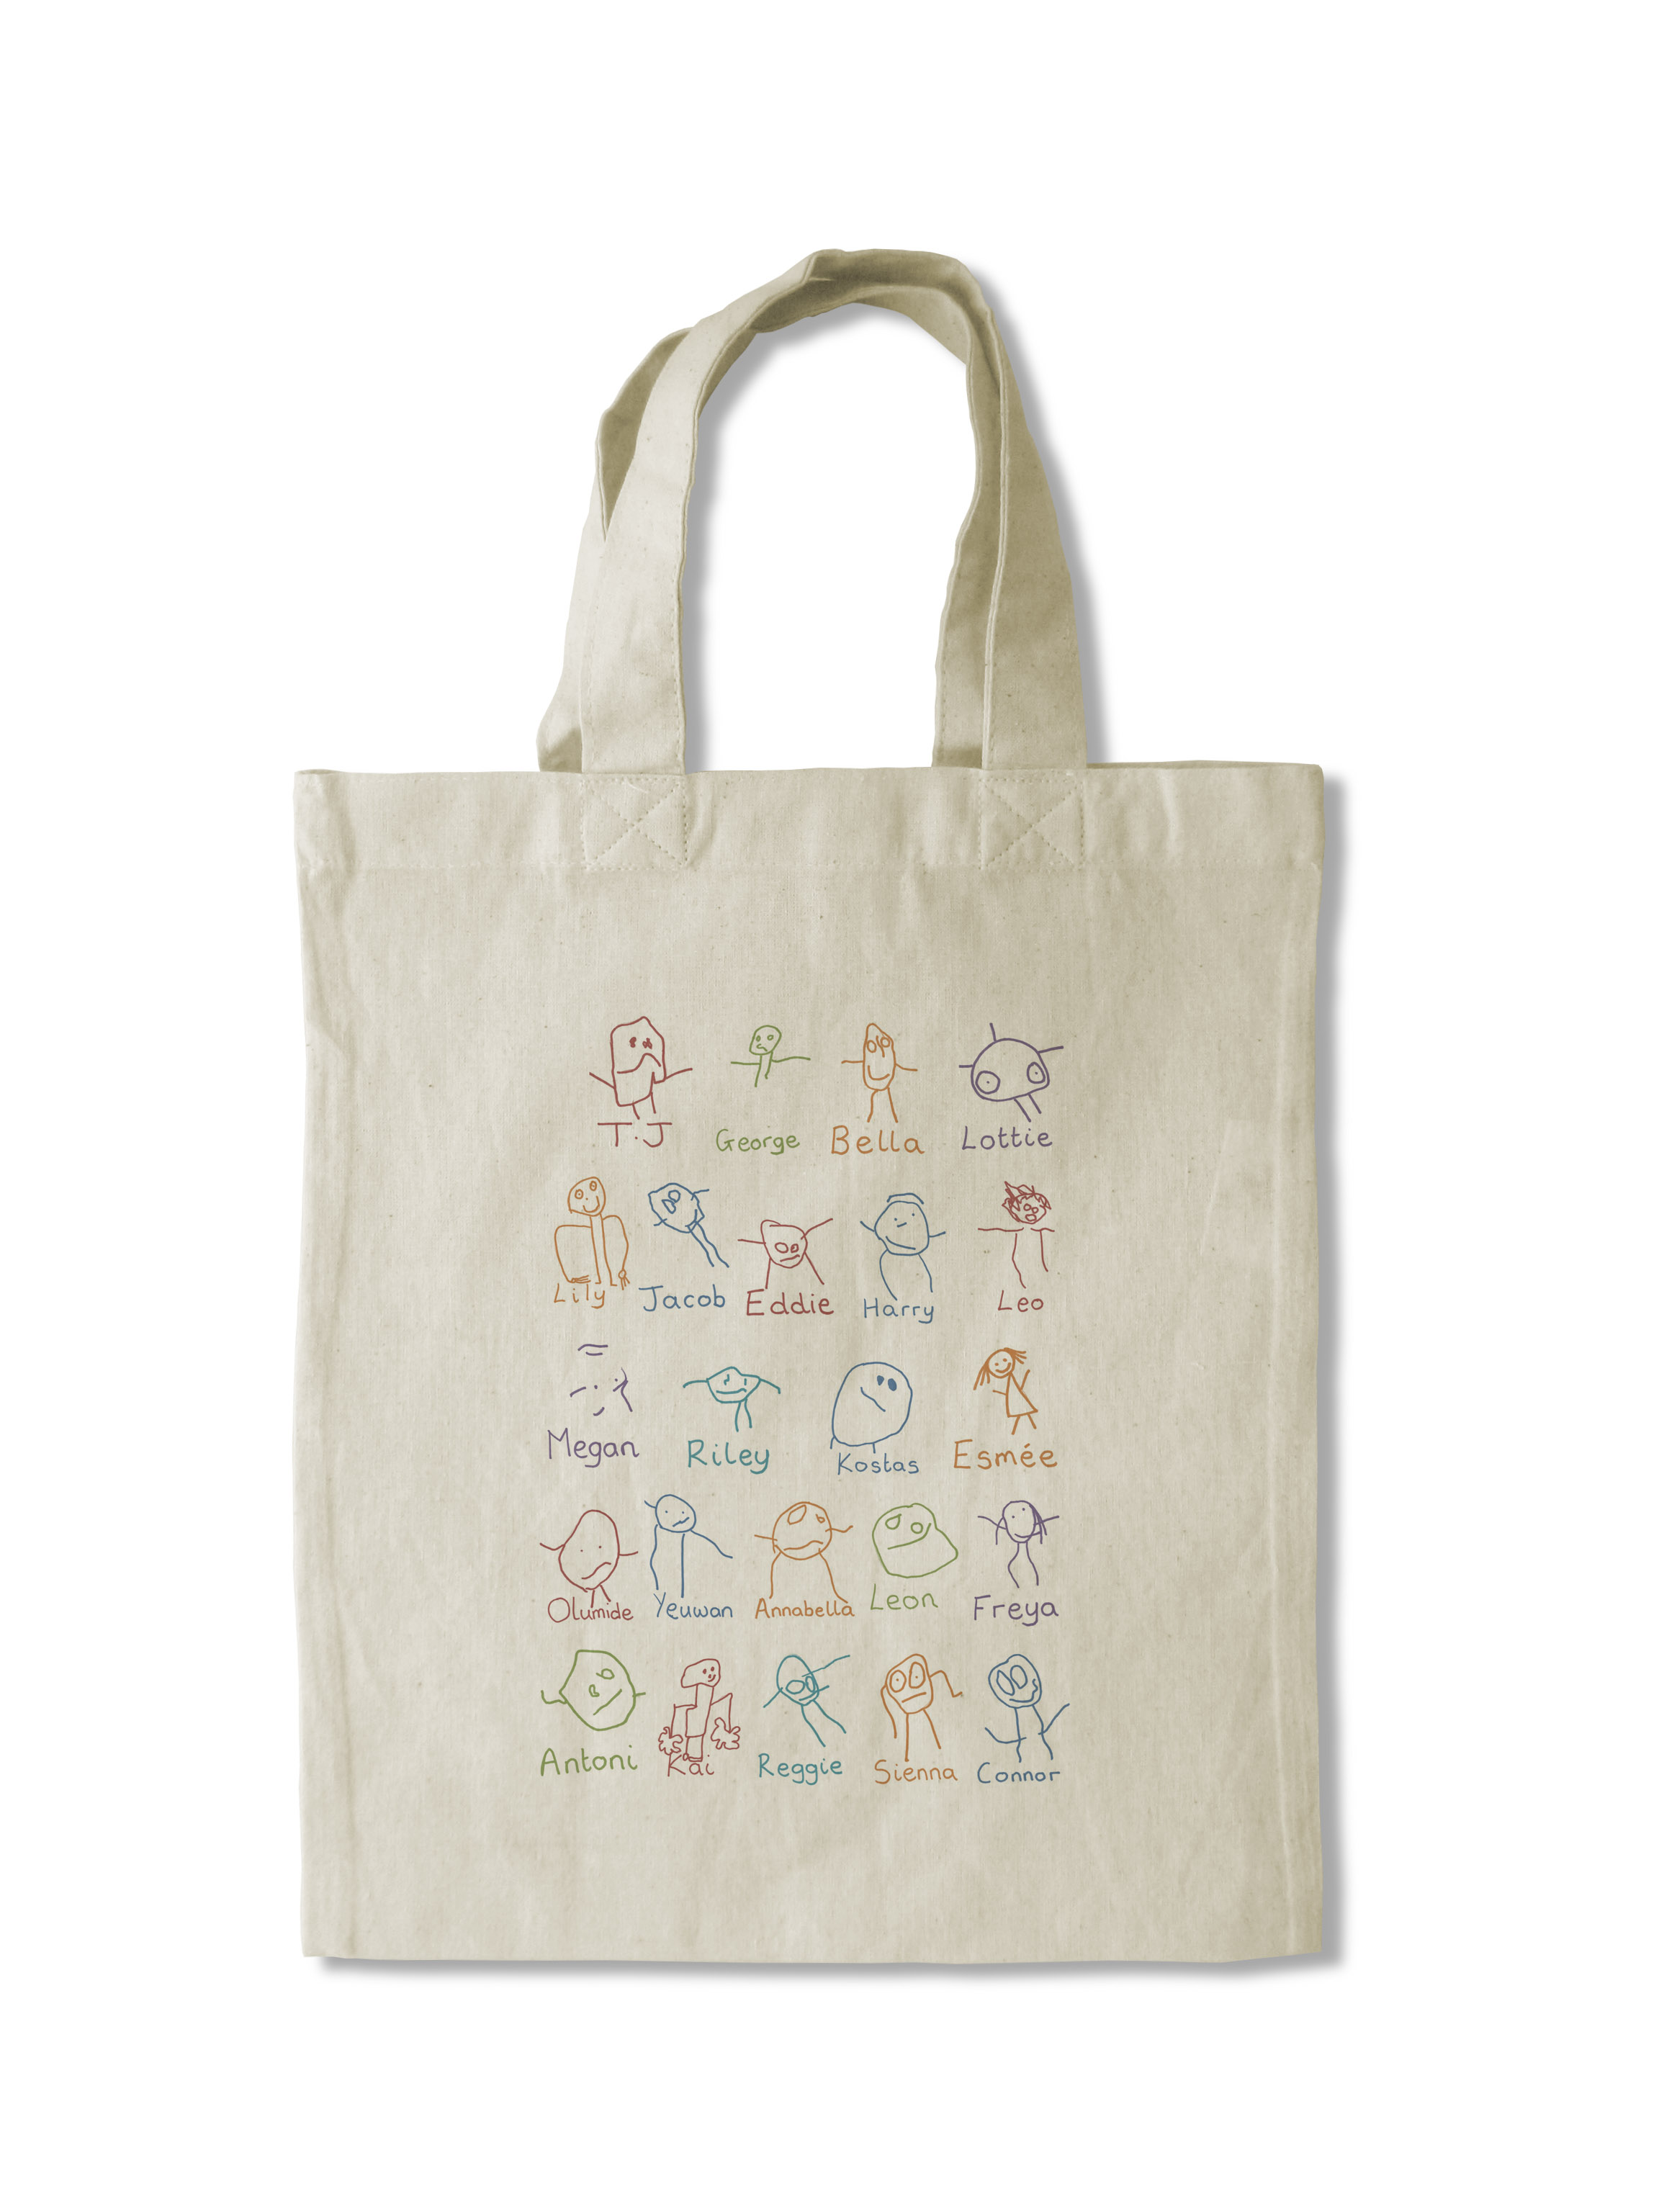 cef6a051d Tote Bags For School | An Ideal School Fundraising Idea | School Bears